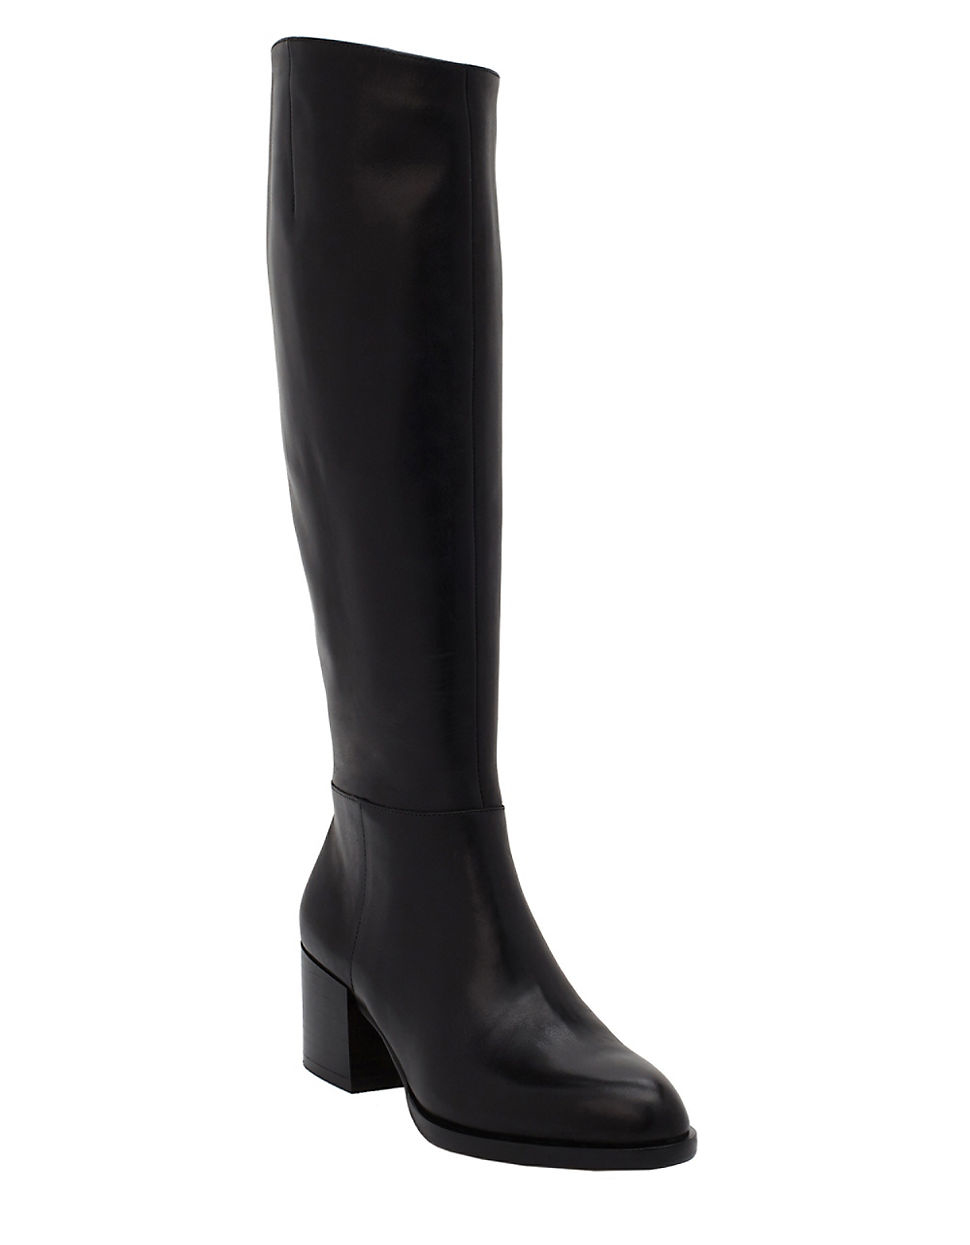 1a5c3a6bb8a8 Gallery. Previously sold at  Lord   Taylor · Women s Riding Boots